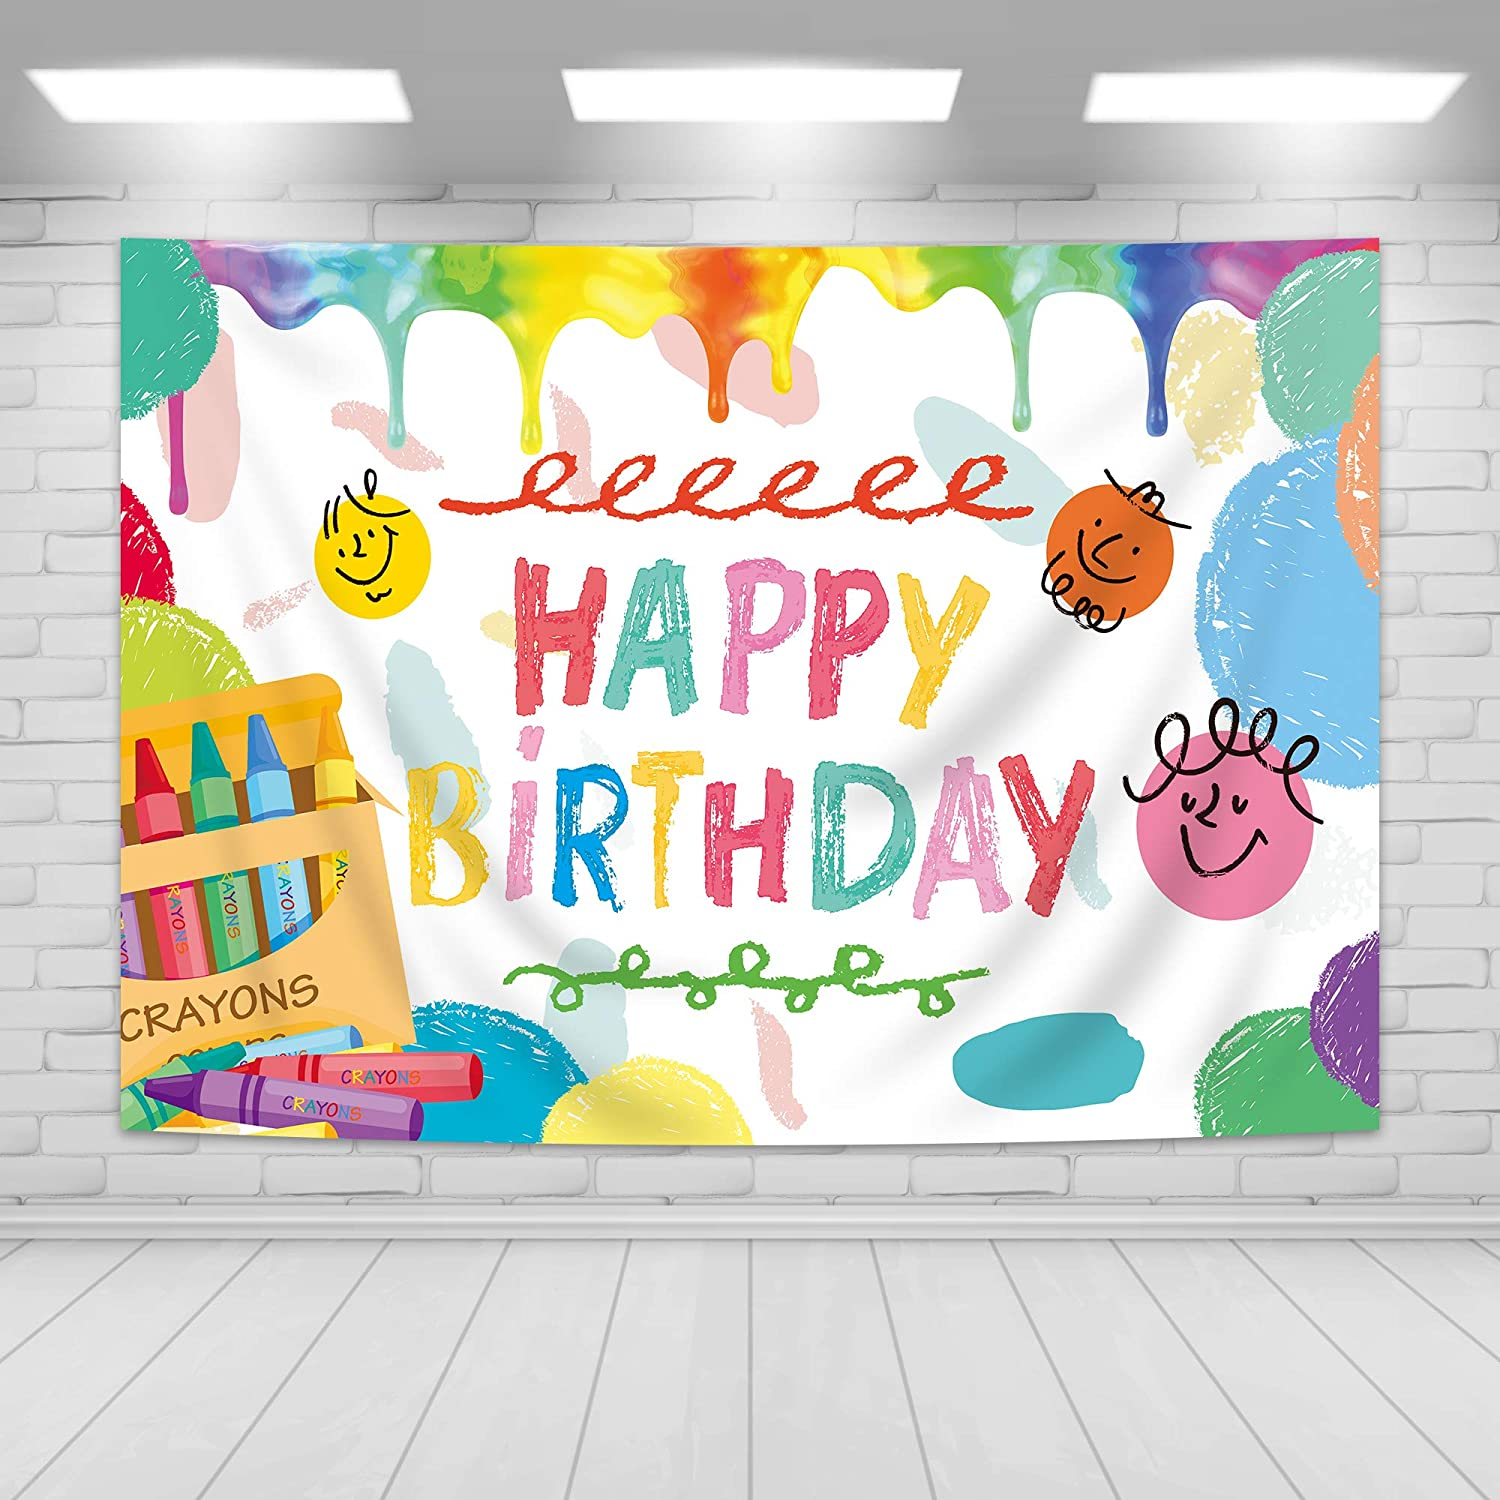 Imirell Colorful Crayon Happy Birthday Party Backdrop Coloring Art Theme Photography Background Polyester Fabric Color Pattern Photo Shoot Decor Props 5Wx3H Feet